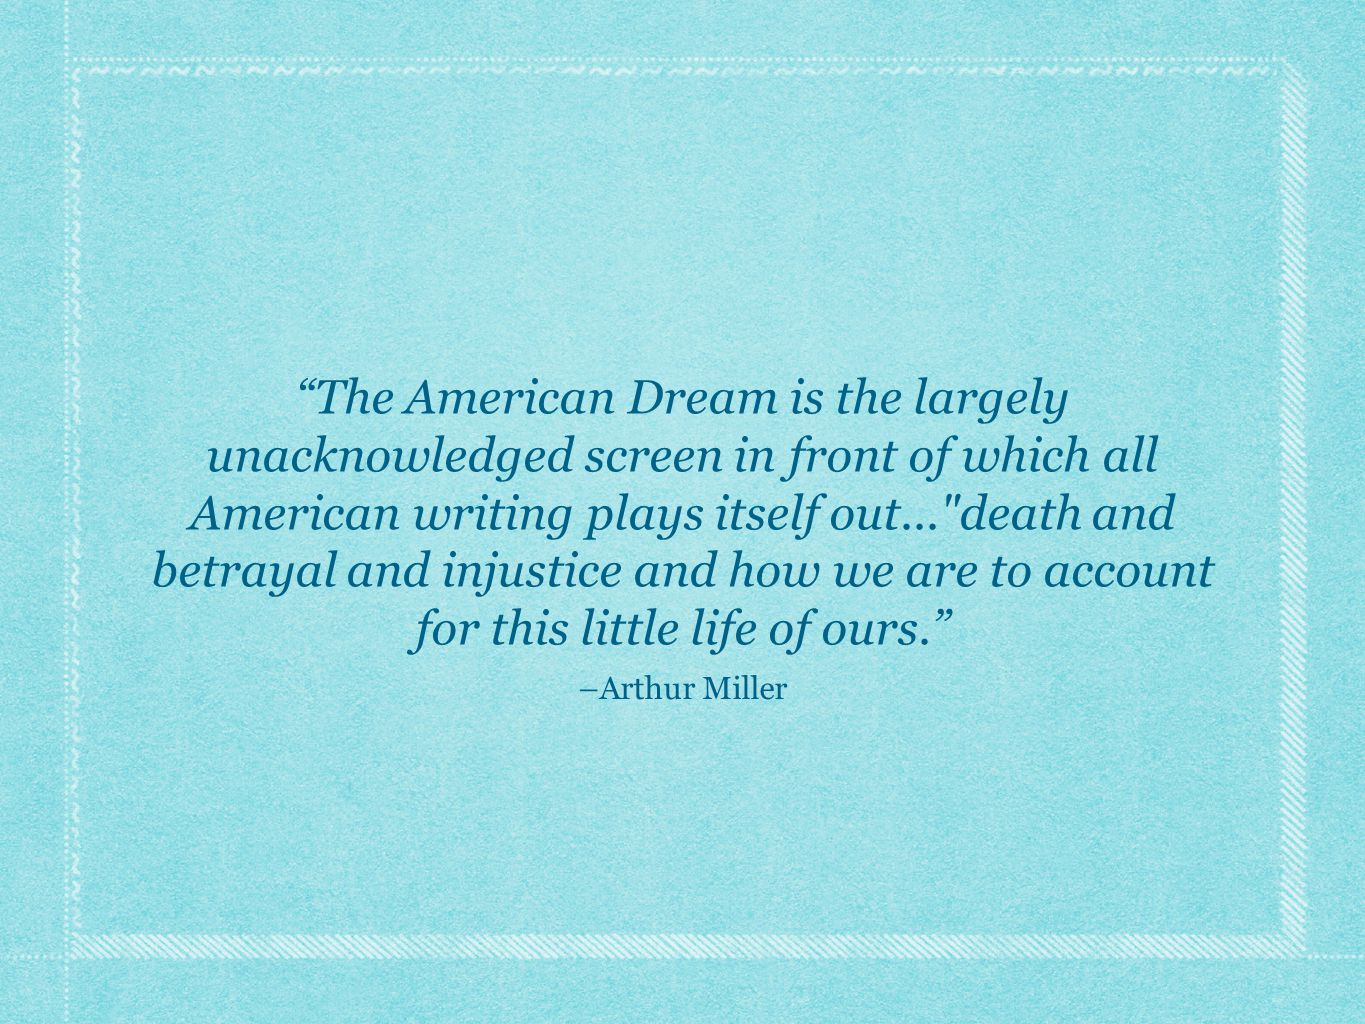 The American Dream is the largely unacknowledged screen in front of which all American writing plays itself out... death and betrayal and injustice and how we are to account for this little life of ours. –Arthur Miller